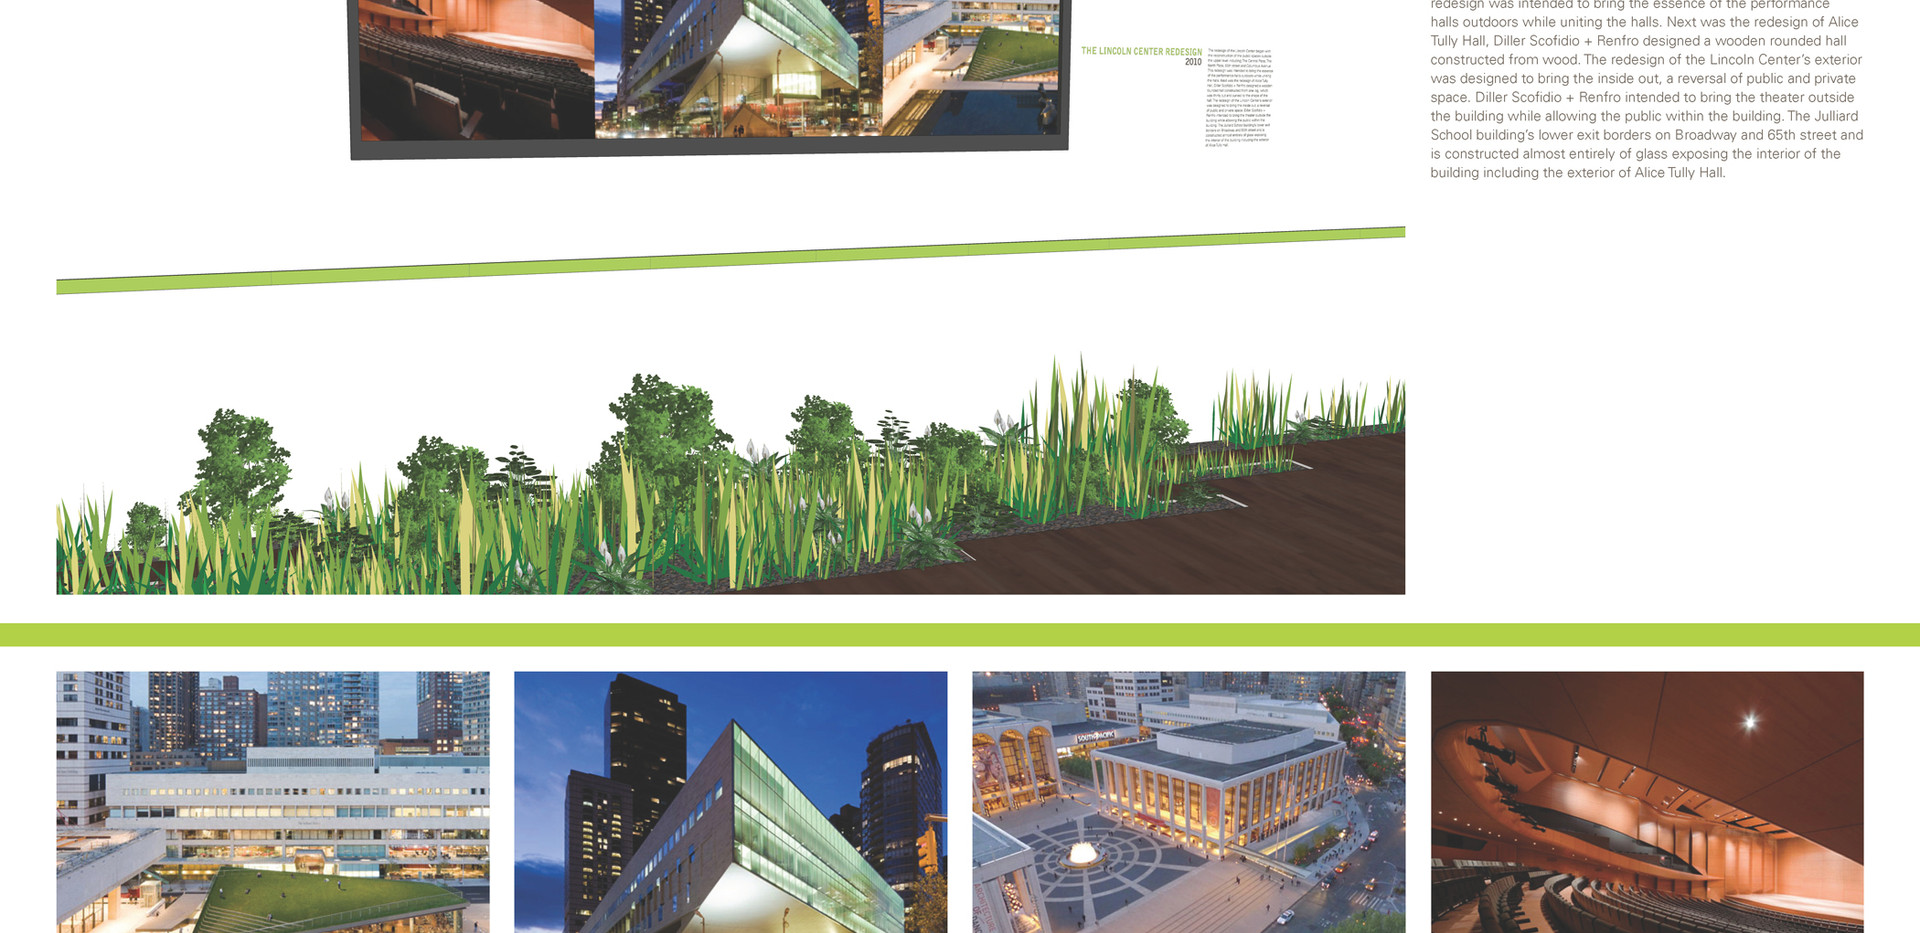 4_DILLER SCOFIDIO +RENFRO FINAL_Page_4.j